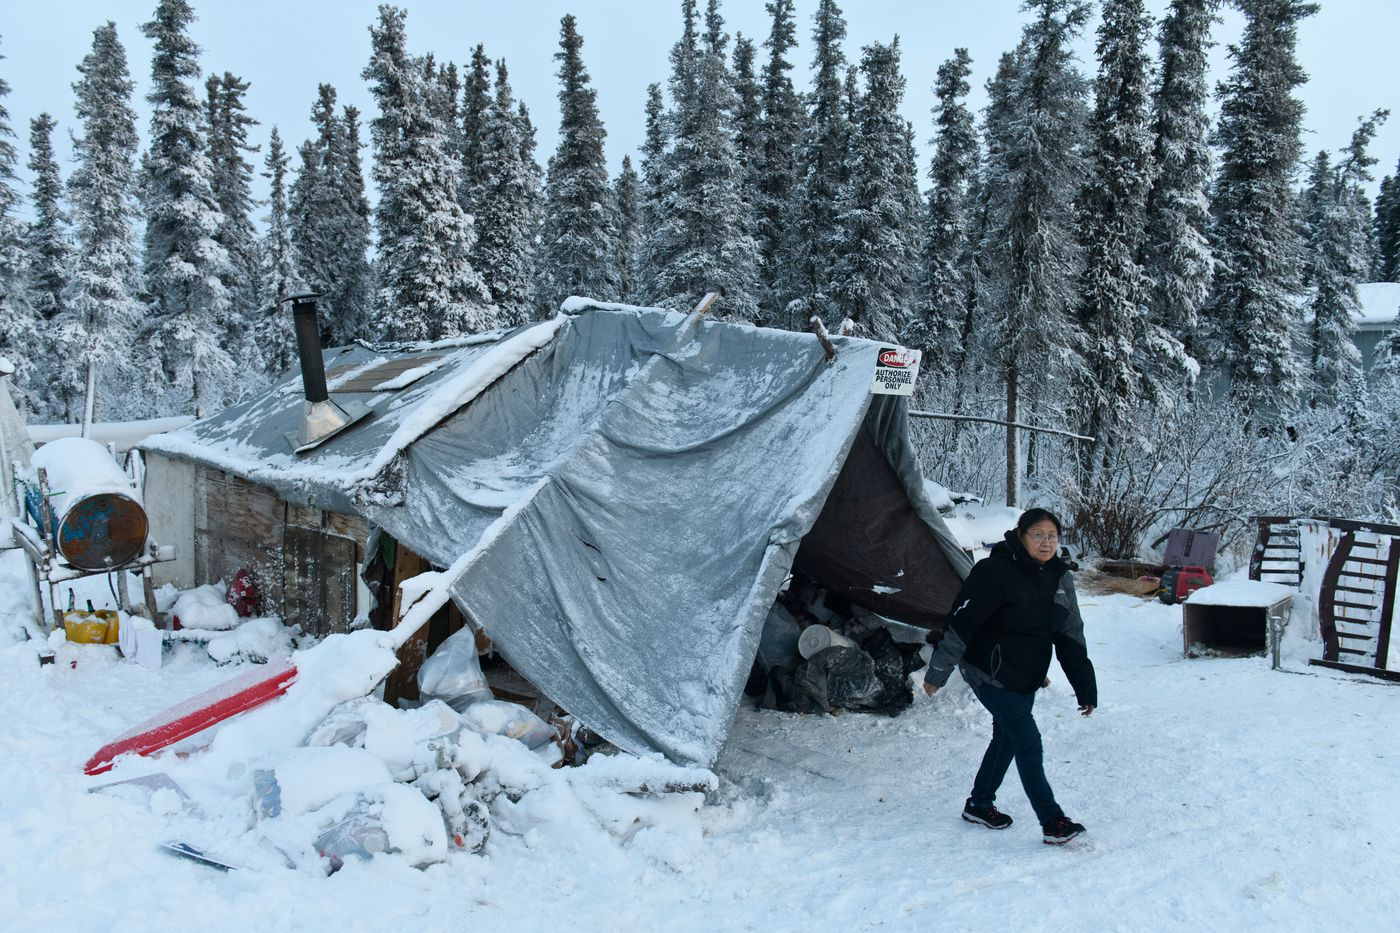 Hannah Coffin walks from her Noorvik home. Six members of the Coffin family currently live in a 12-by-12-foot shelter made of trees, plywood and tarps in Noorvik. After applying for years, they expect to move into a home that is currently under construction in the next couple months. (Marc Lester / ADN)